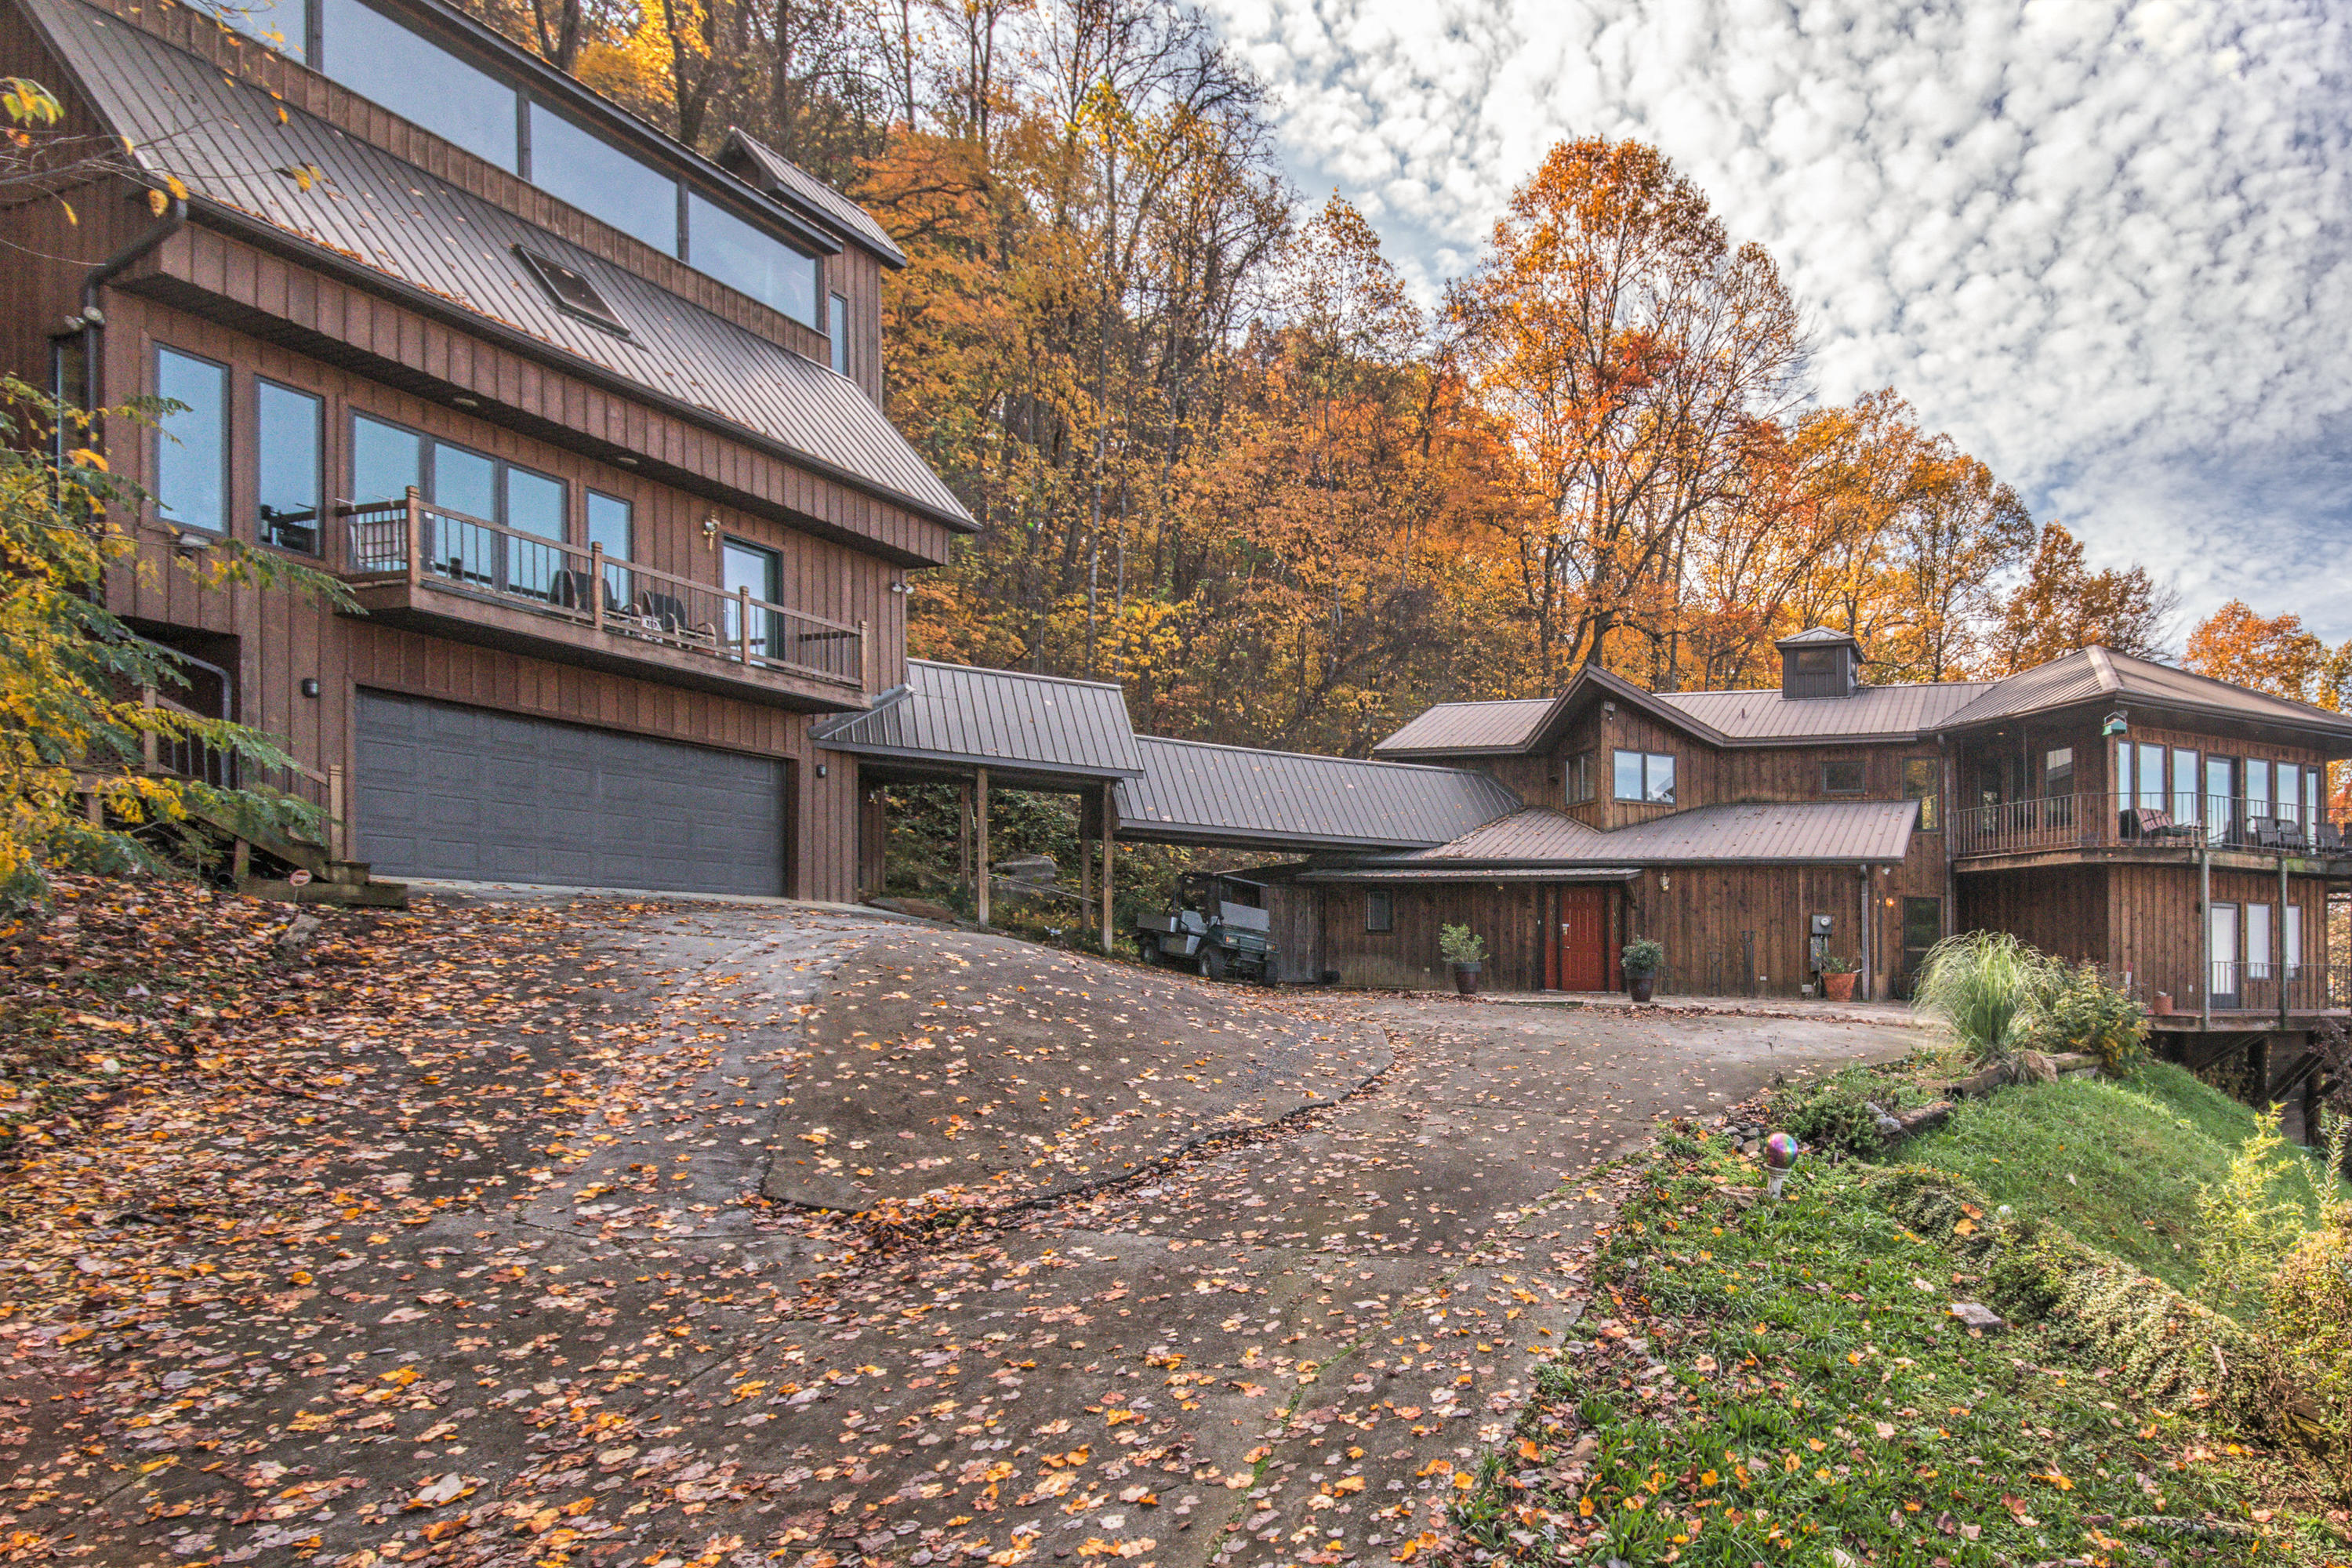 3841 Thomas Cross Rd, Sevierville, Tennessee 37876, 4 Bedrooms Bedrooms, ,5 BathroomsBathrooms,Single Family,For Sale,Thomas Cross,1099338